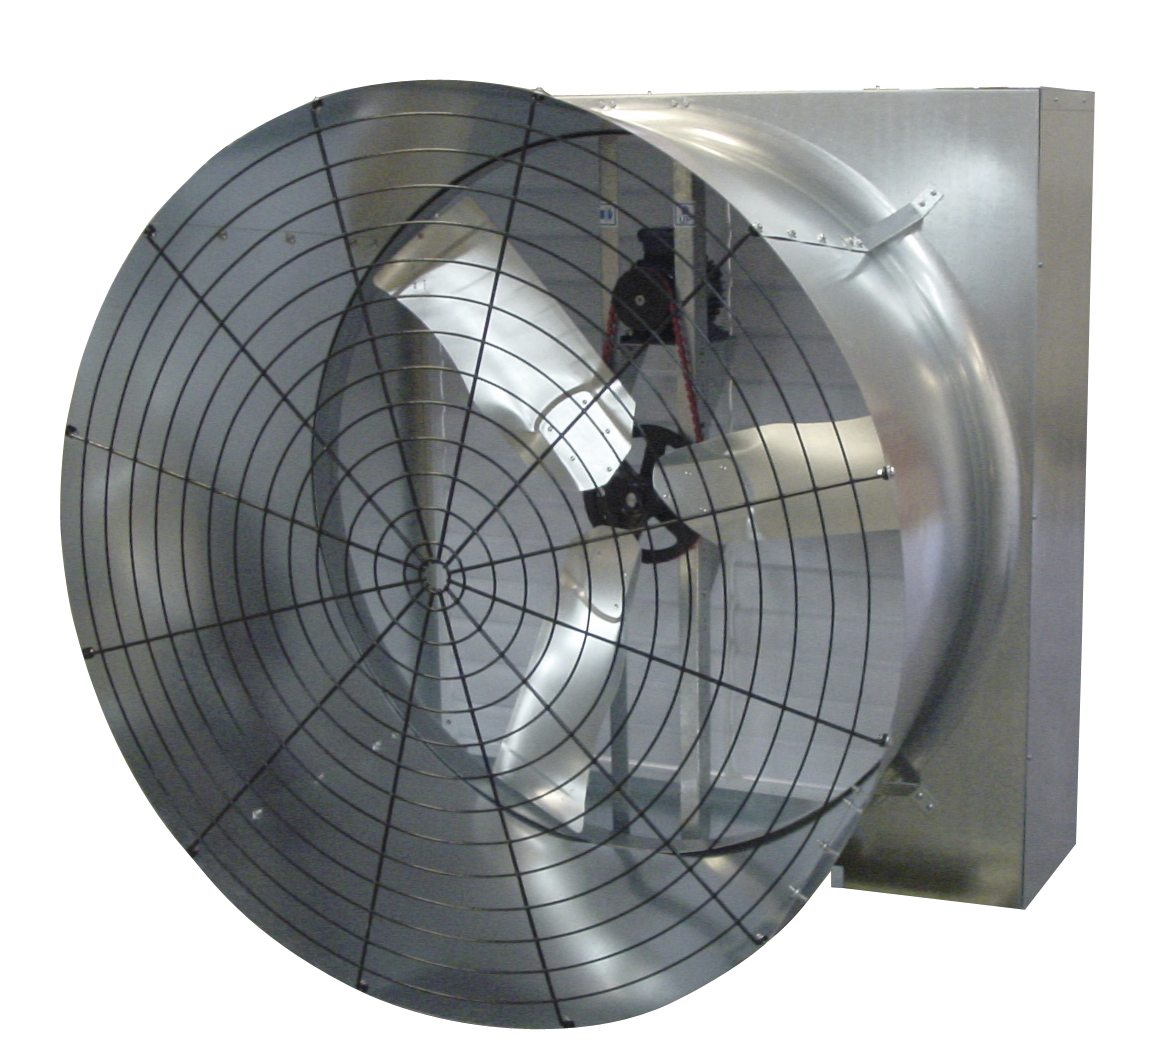 High Volume Low Speed Fan : Abbi aerotech grower fan poultry dairy hvls